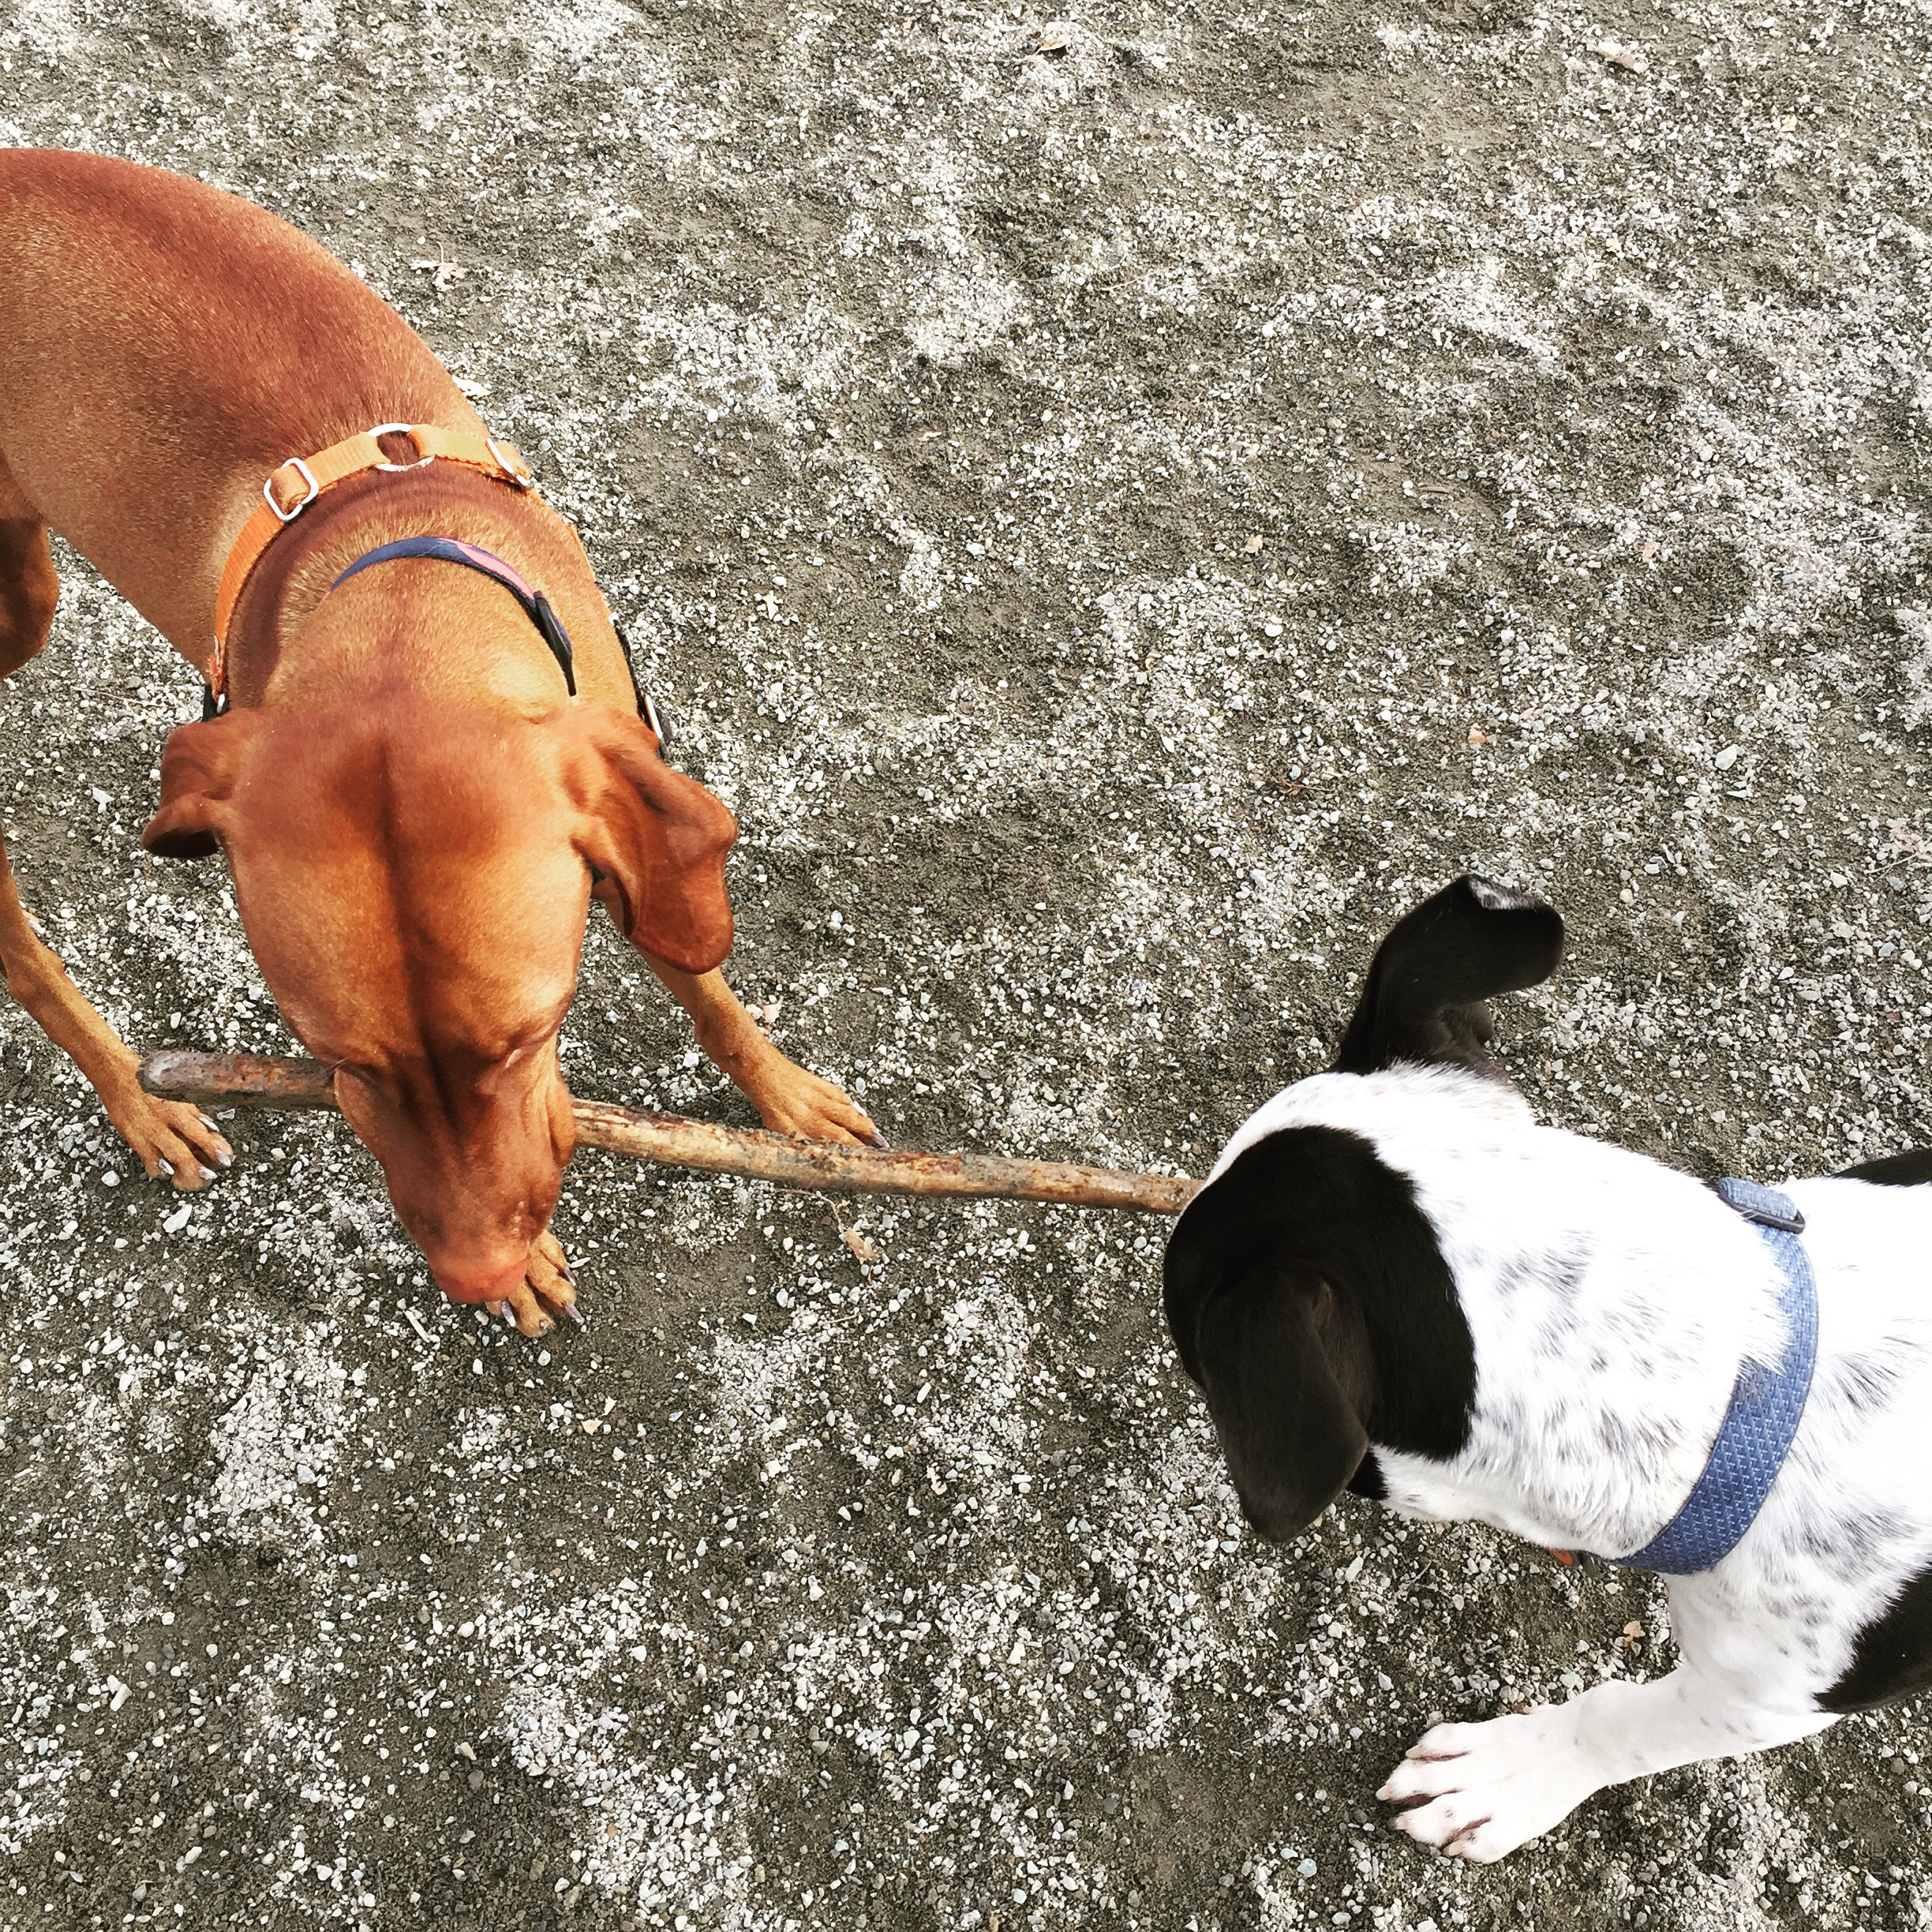 This never gets old...stick tug-o-war